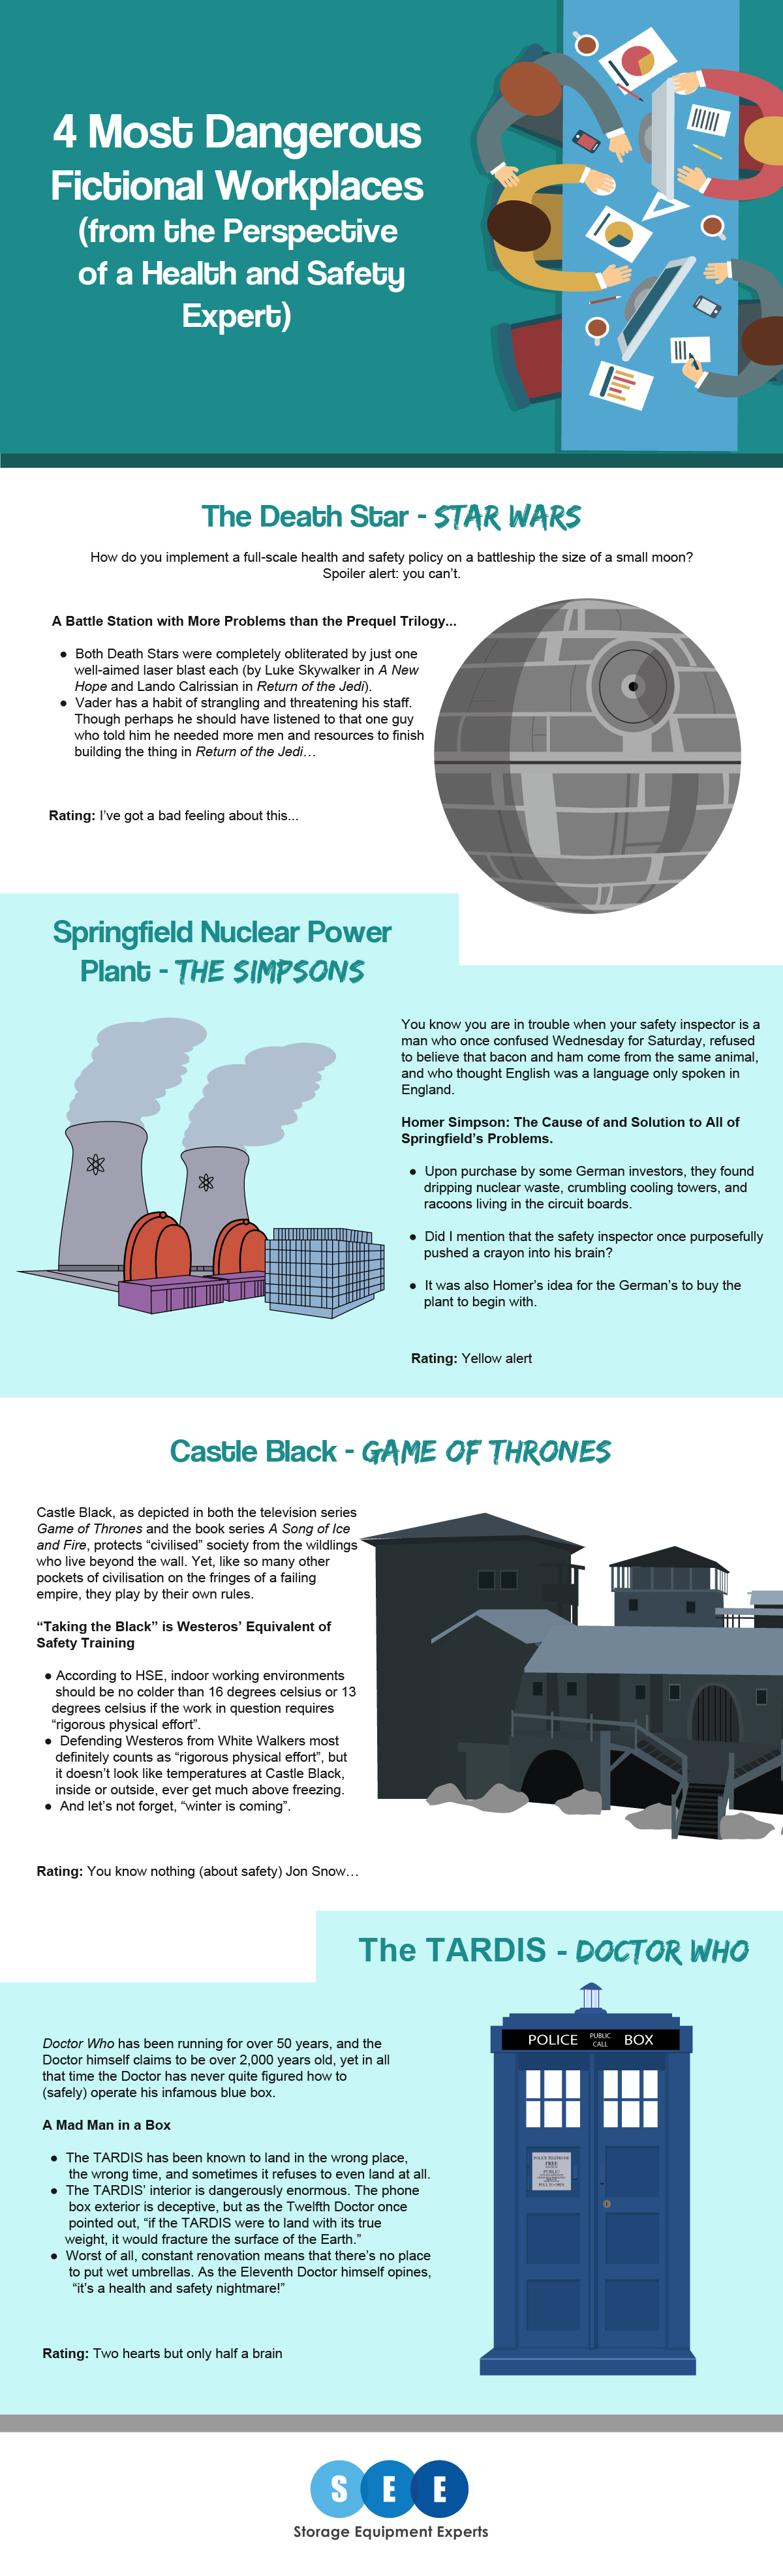 Most Dangerous Fictional Workplaces - workplace safety infographics